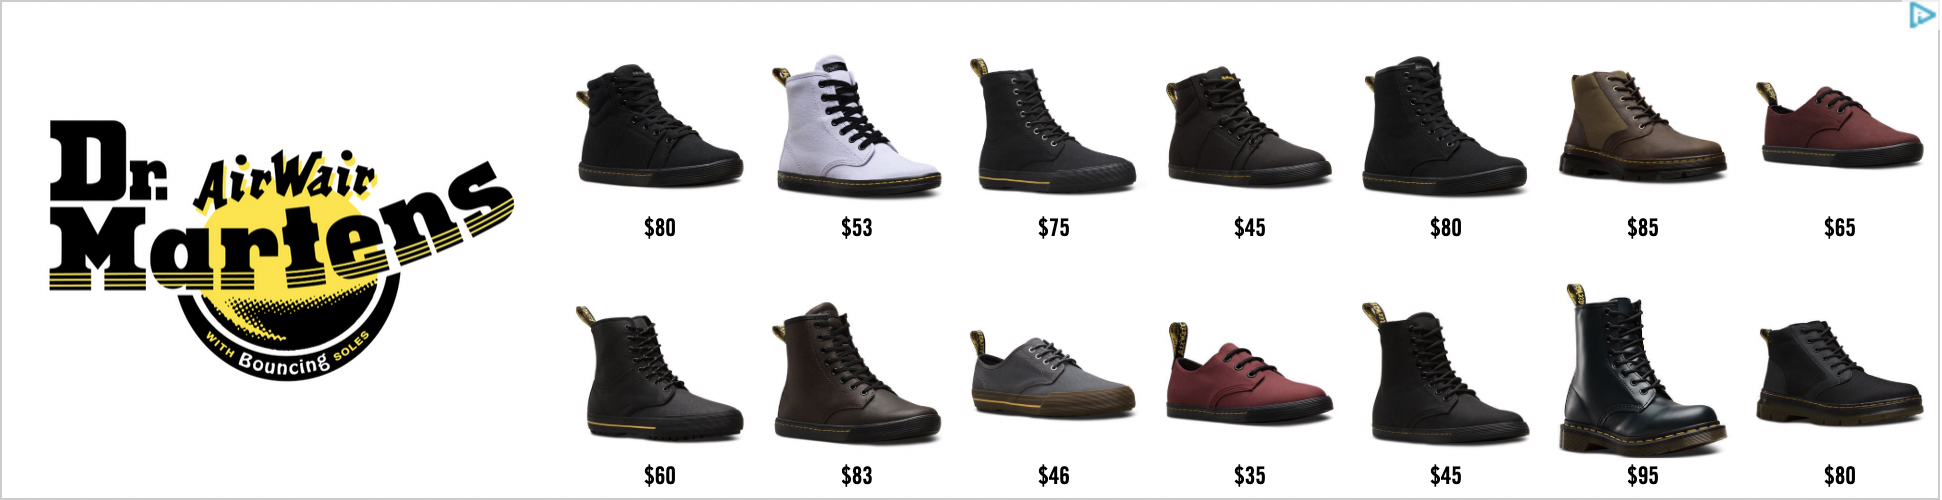 Facebook & Google Ads: How to get started with Remarketing [made easy]. Dr Martens Remarketing Display Ad. Hurree.